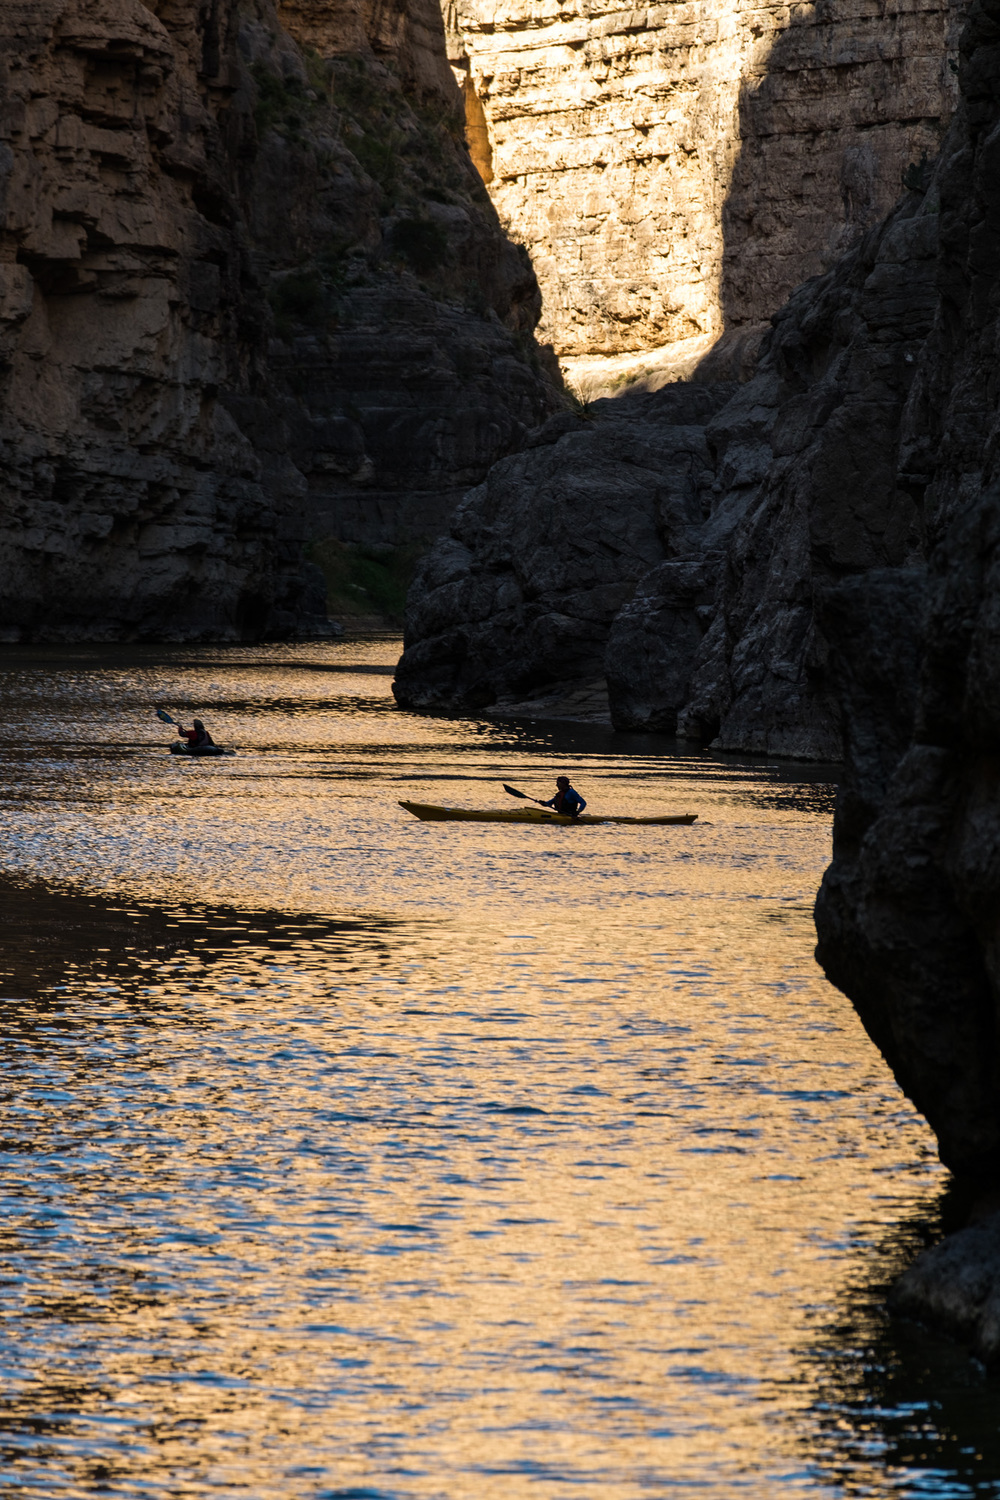 Kayakers in the distant canyon.